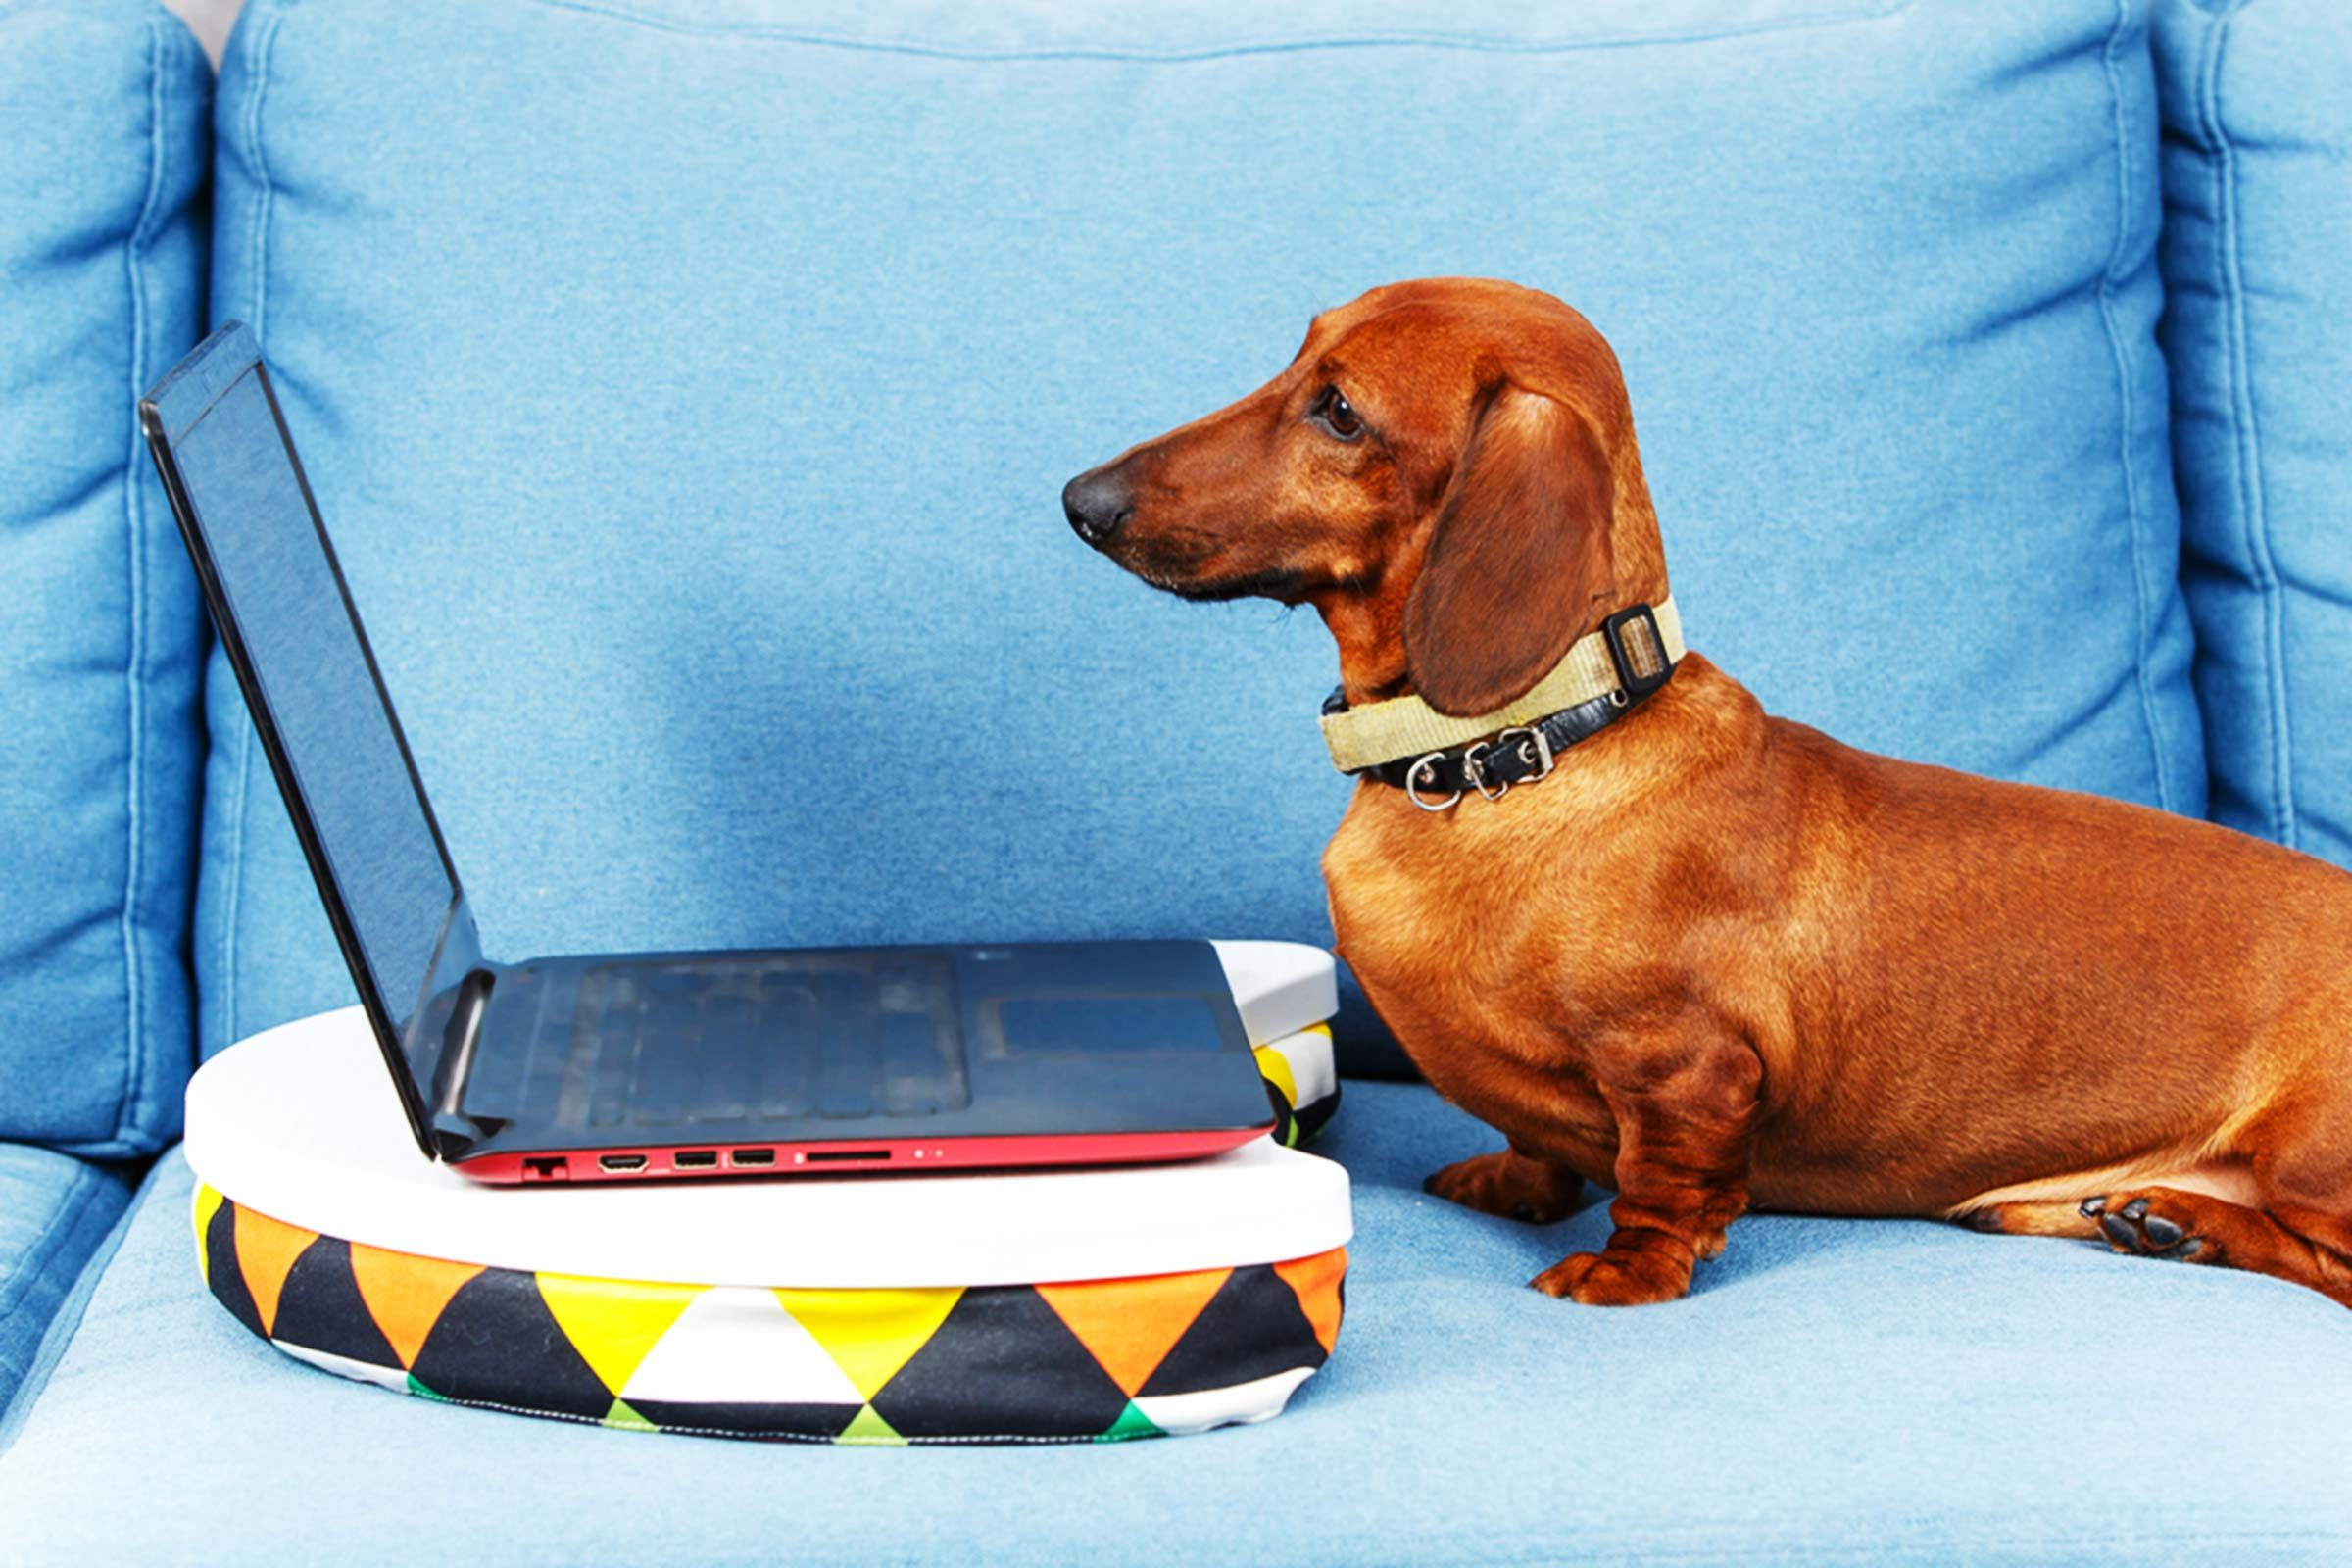 Ways to Keep Your Pet Busy While You're at Work - Reader's Digest6 Smart Ways to Keep Your Pet Happy While You're at Work All Day - 웹